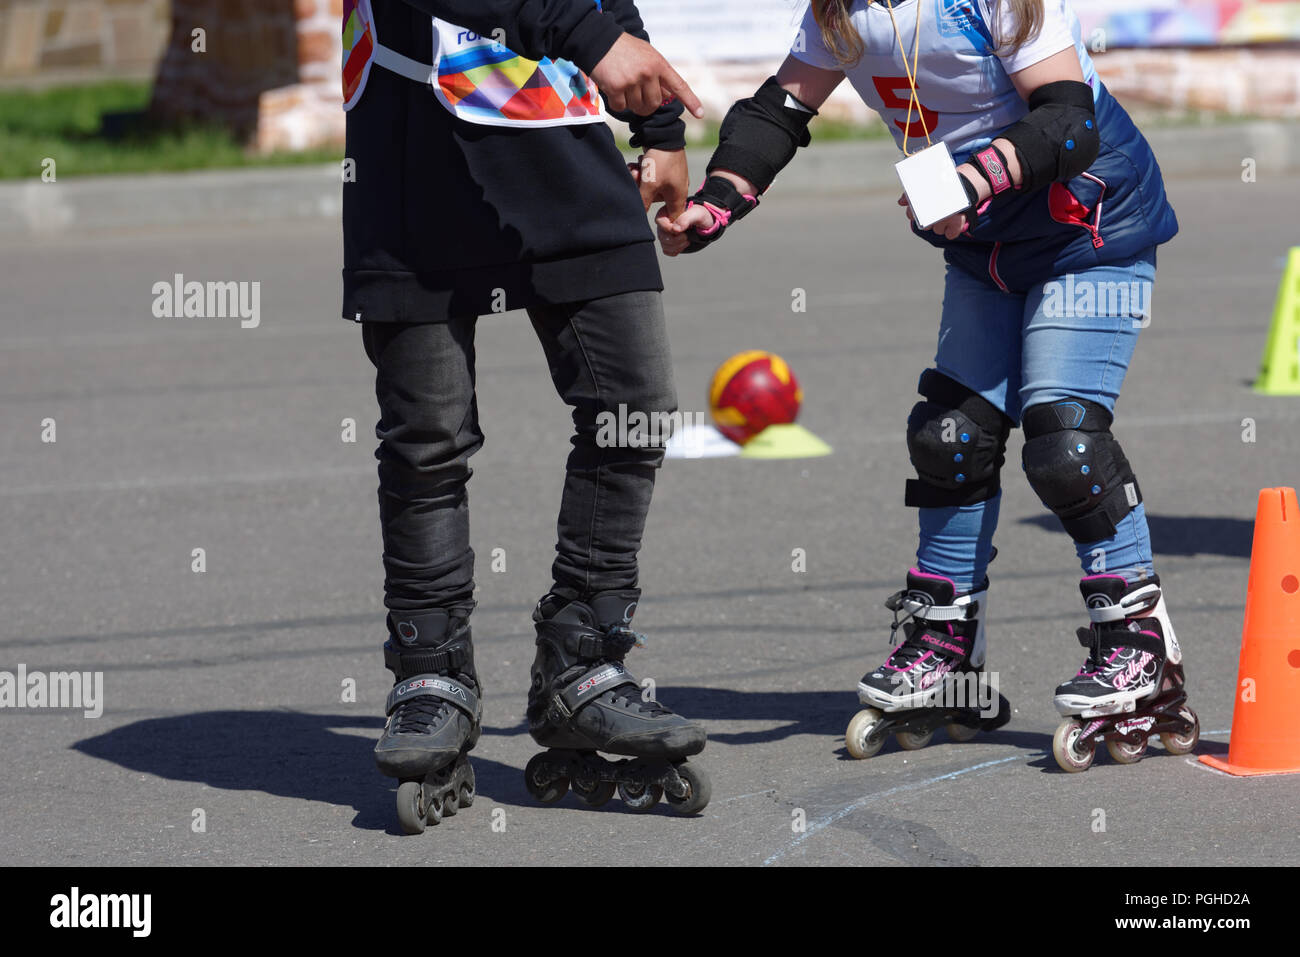 St. Petersburg, Russia - May 30, 2018: Disabled child with supporting instructor participates in the competitions Starts Of Dreams.Rollers. 32 disable - Stock Image